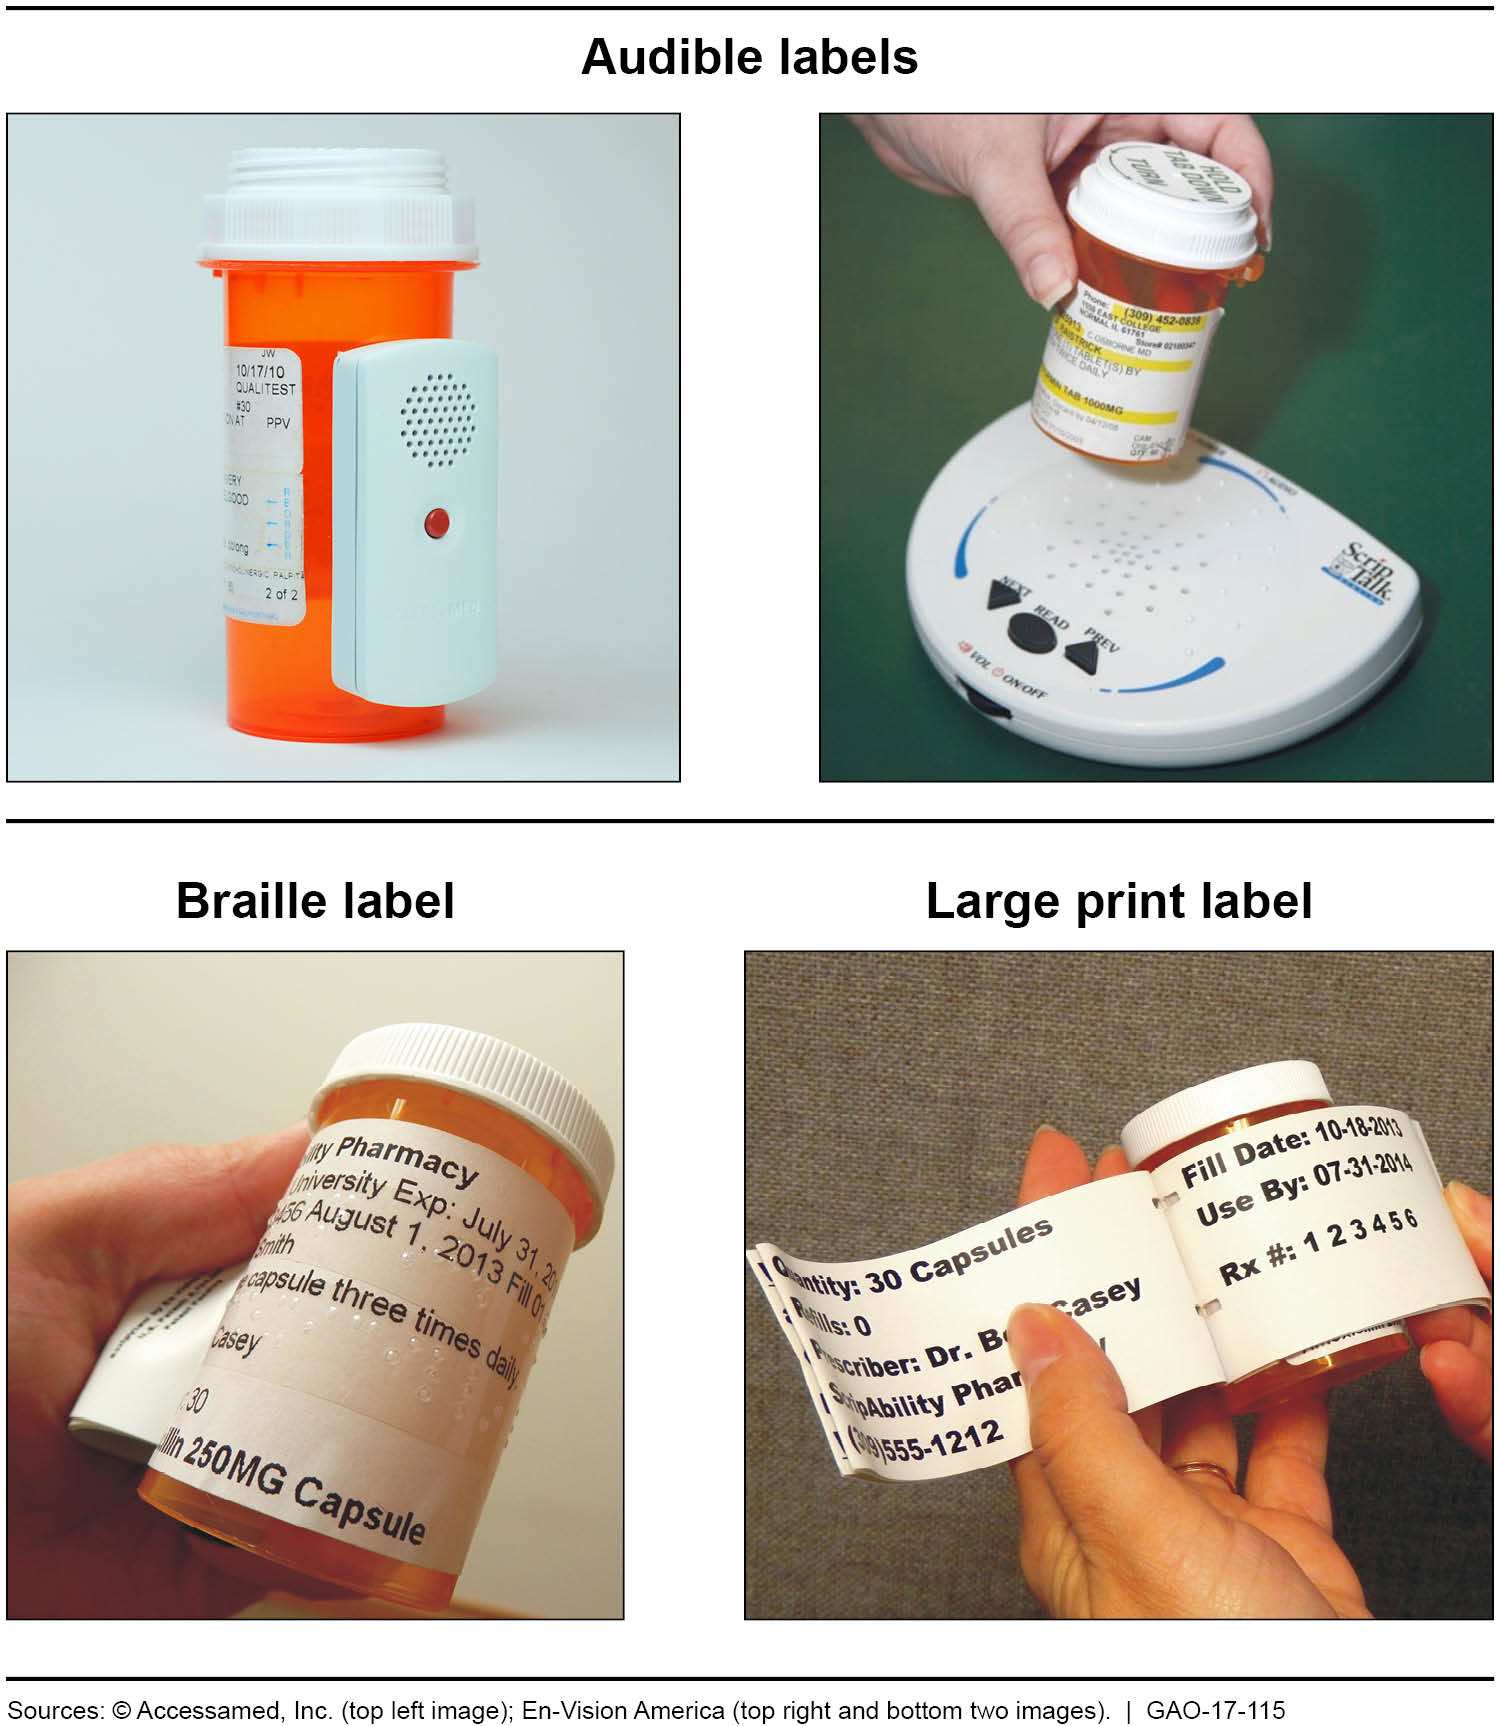 Examples of audible, braille, and large print prescription drug container labels.